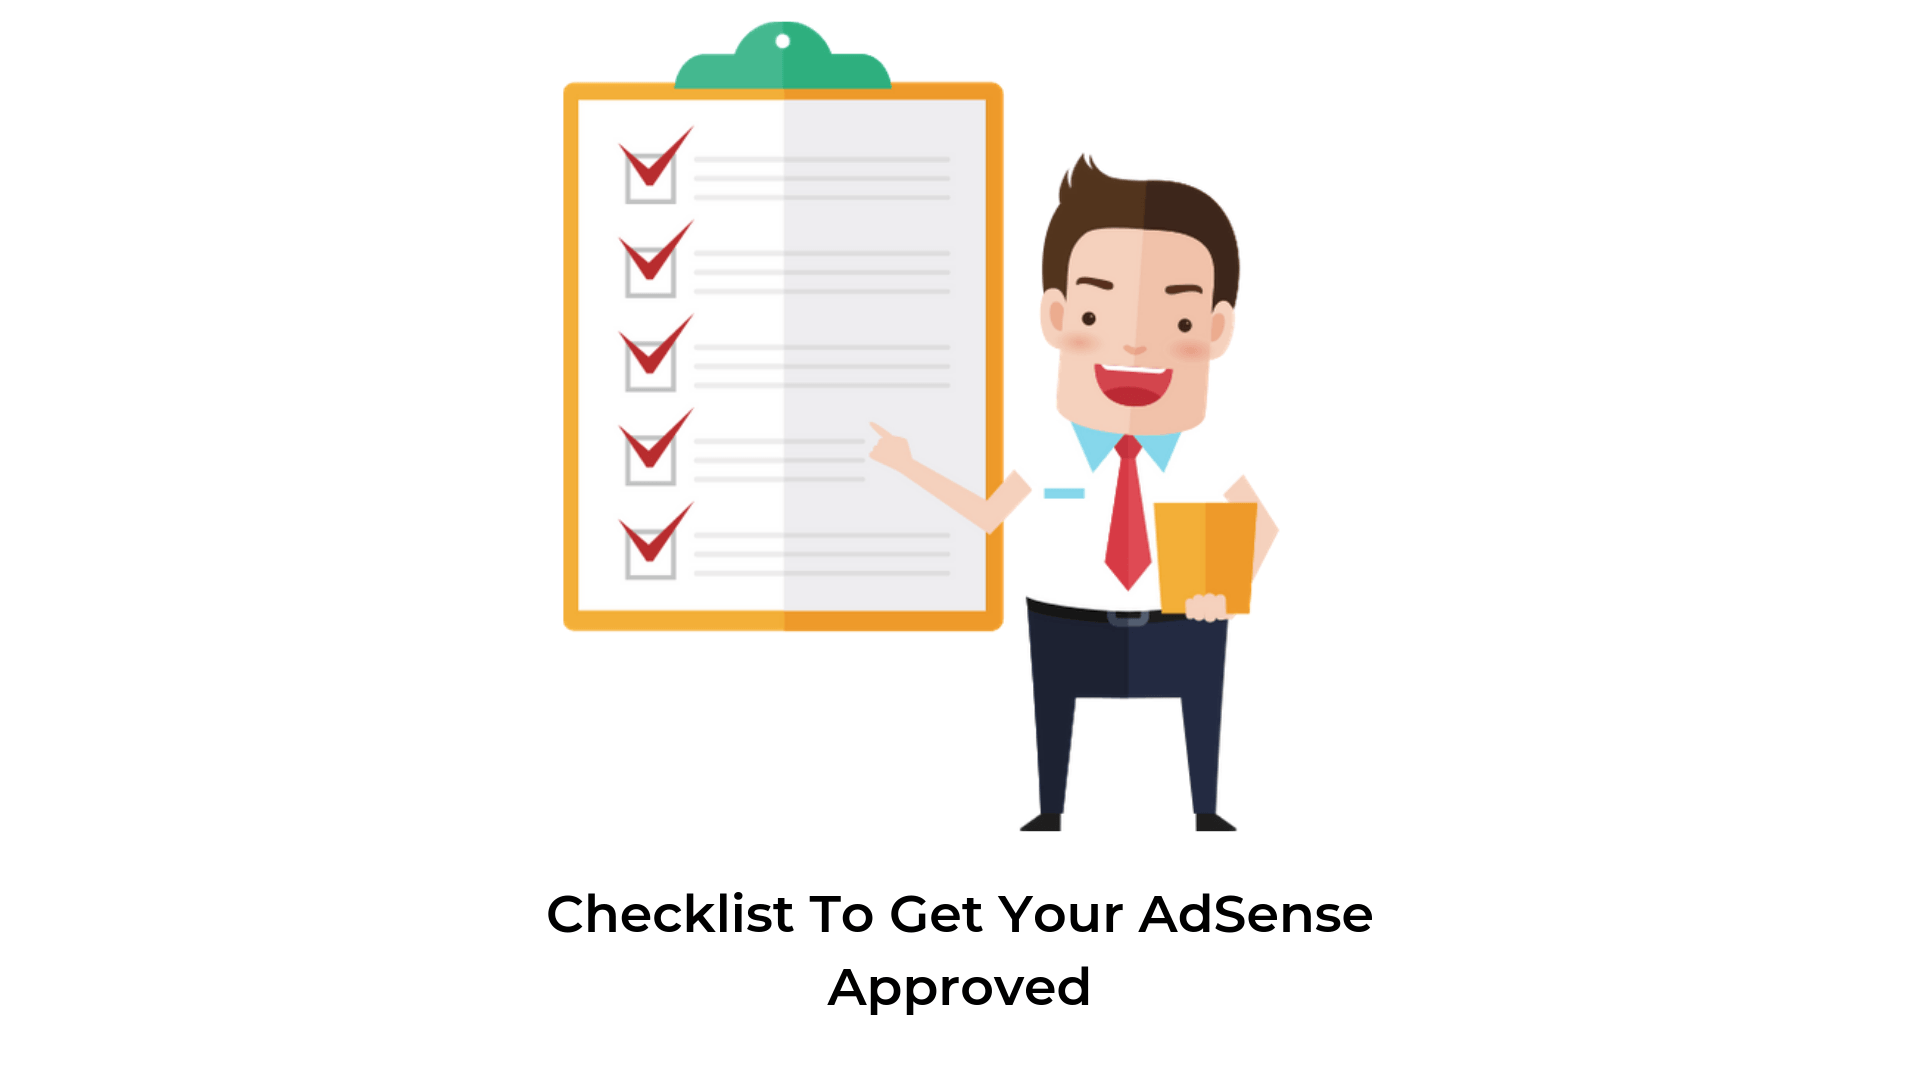 Checklist-To-Get-AdSense-Approved